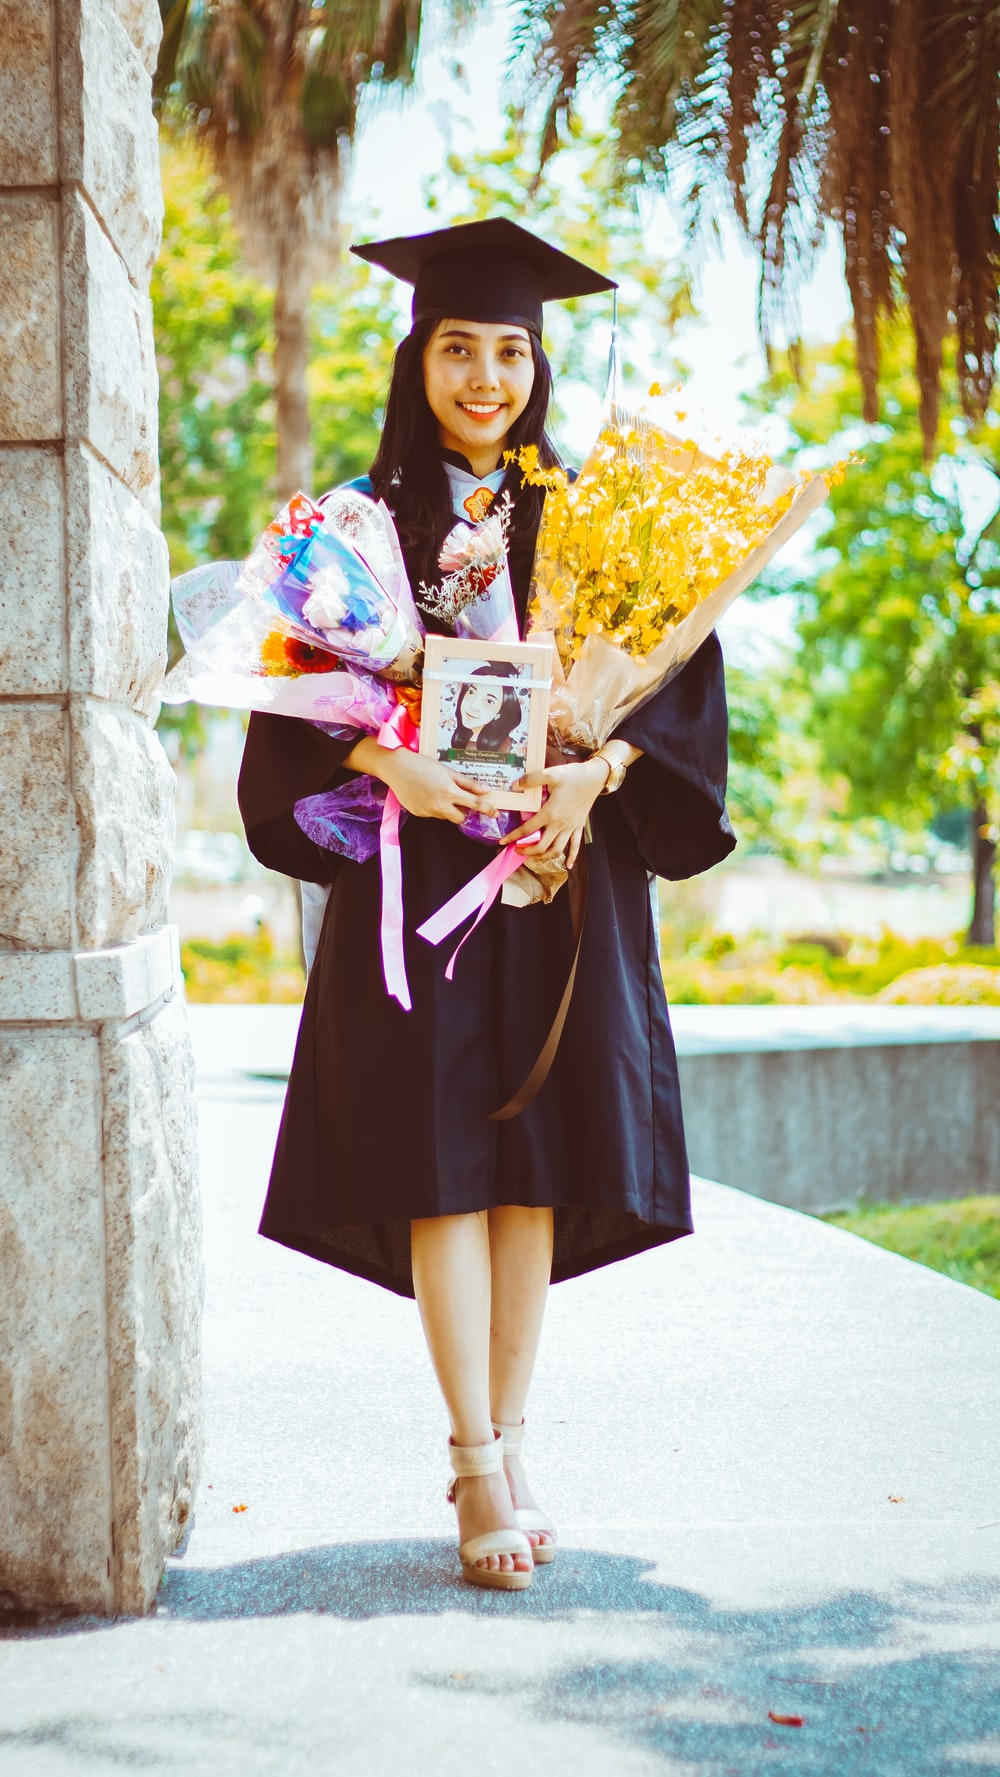 woman in black and purple academic dress holding bouquet of flowers